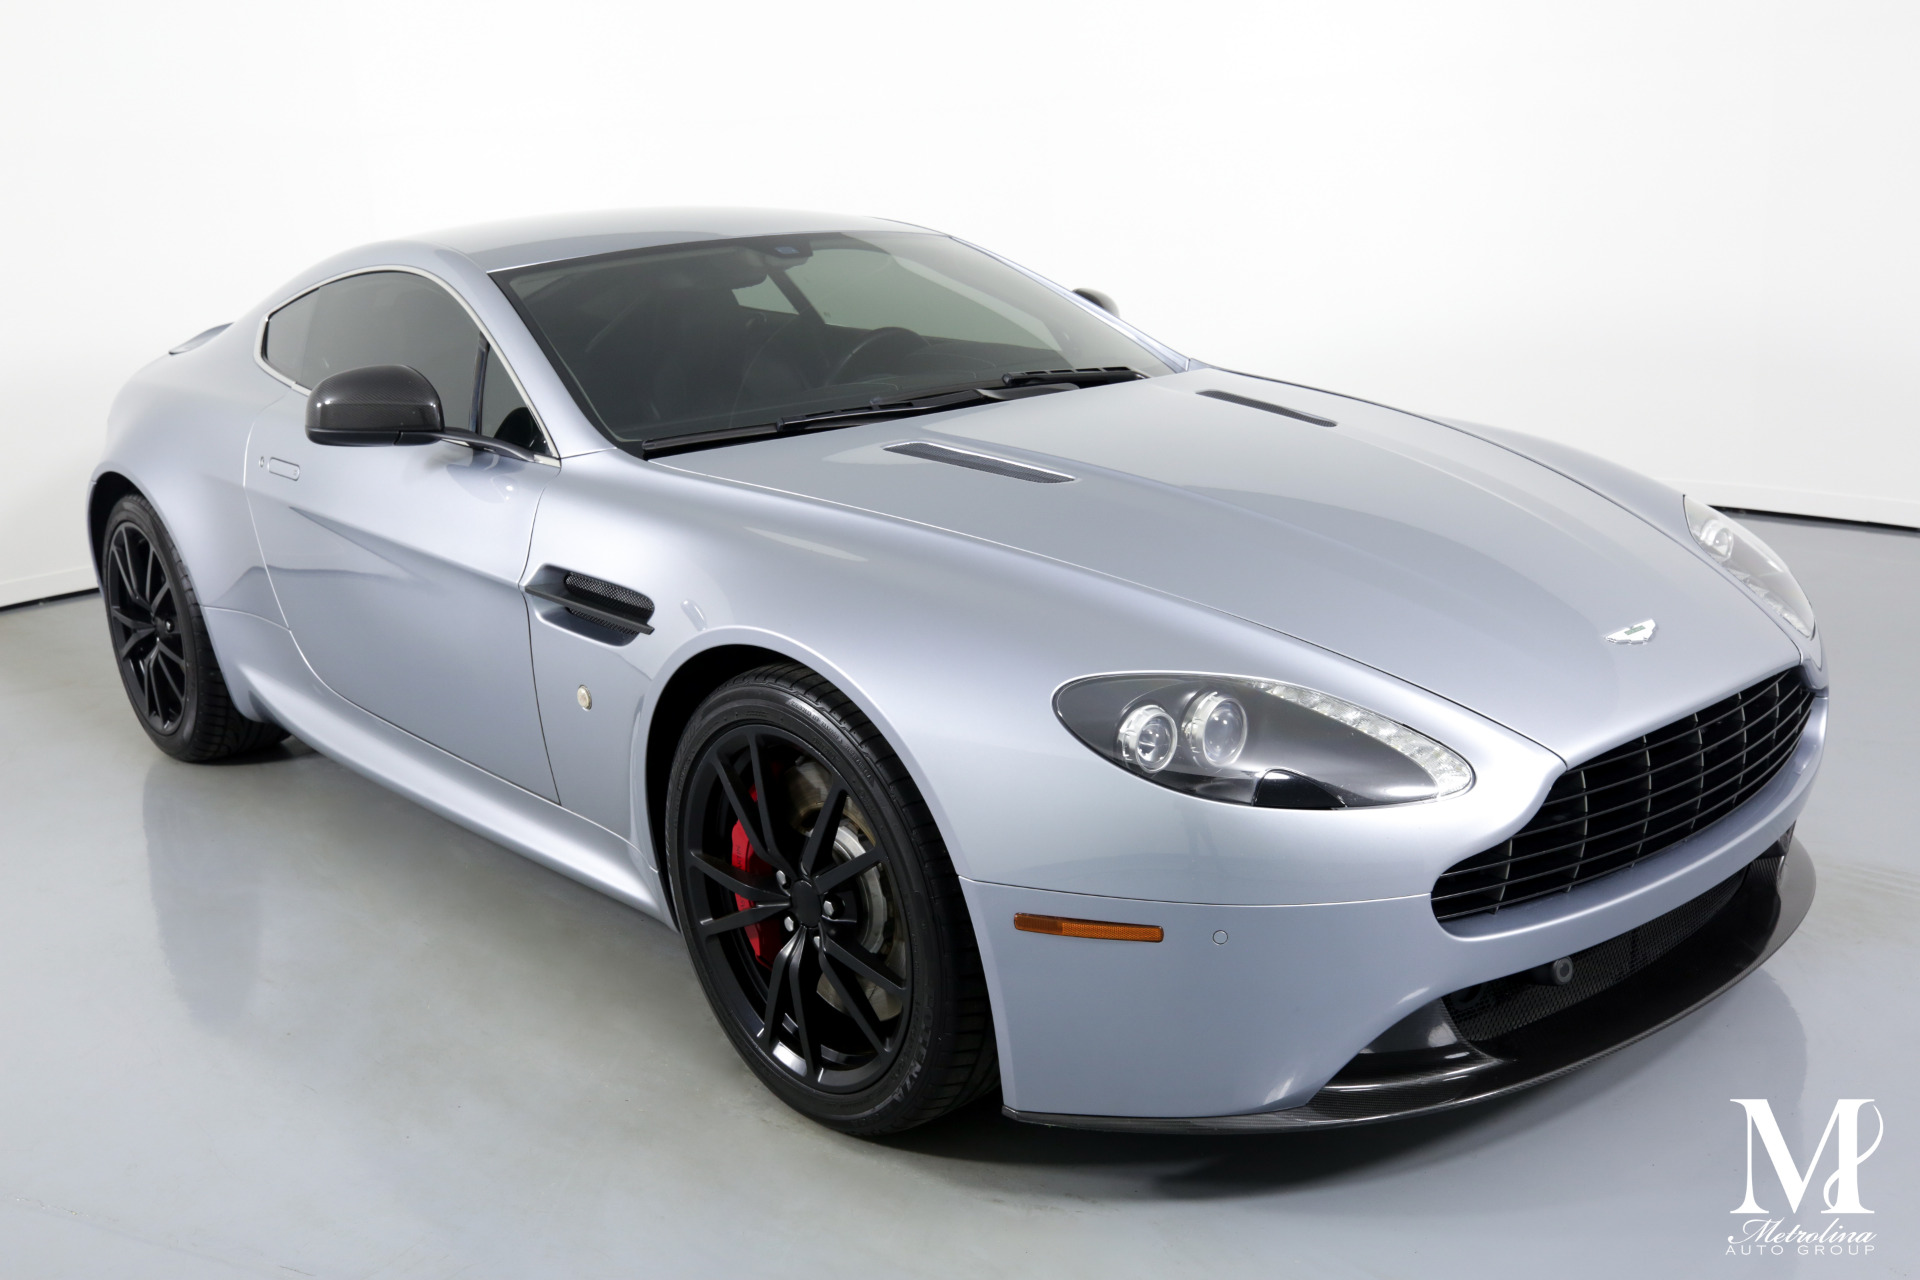 Used 2014 Aston Martin V8 Vantage for sale $49,996 at Metrolina Auto Group in Charlotte NC 28217 - 2